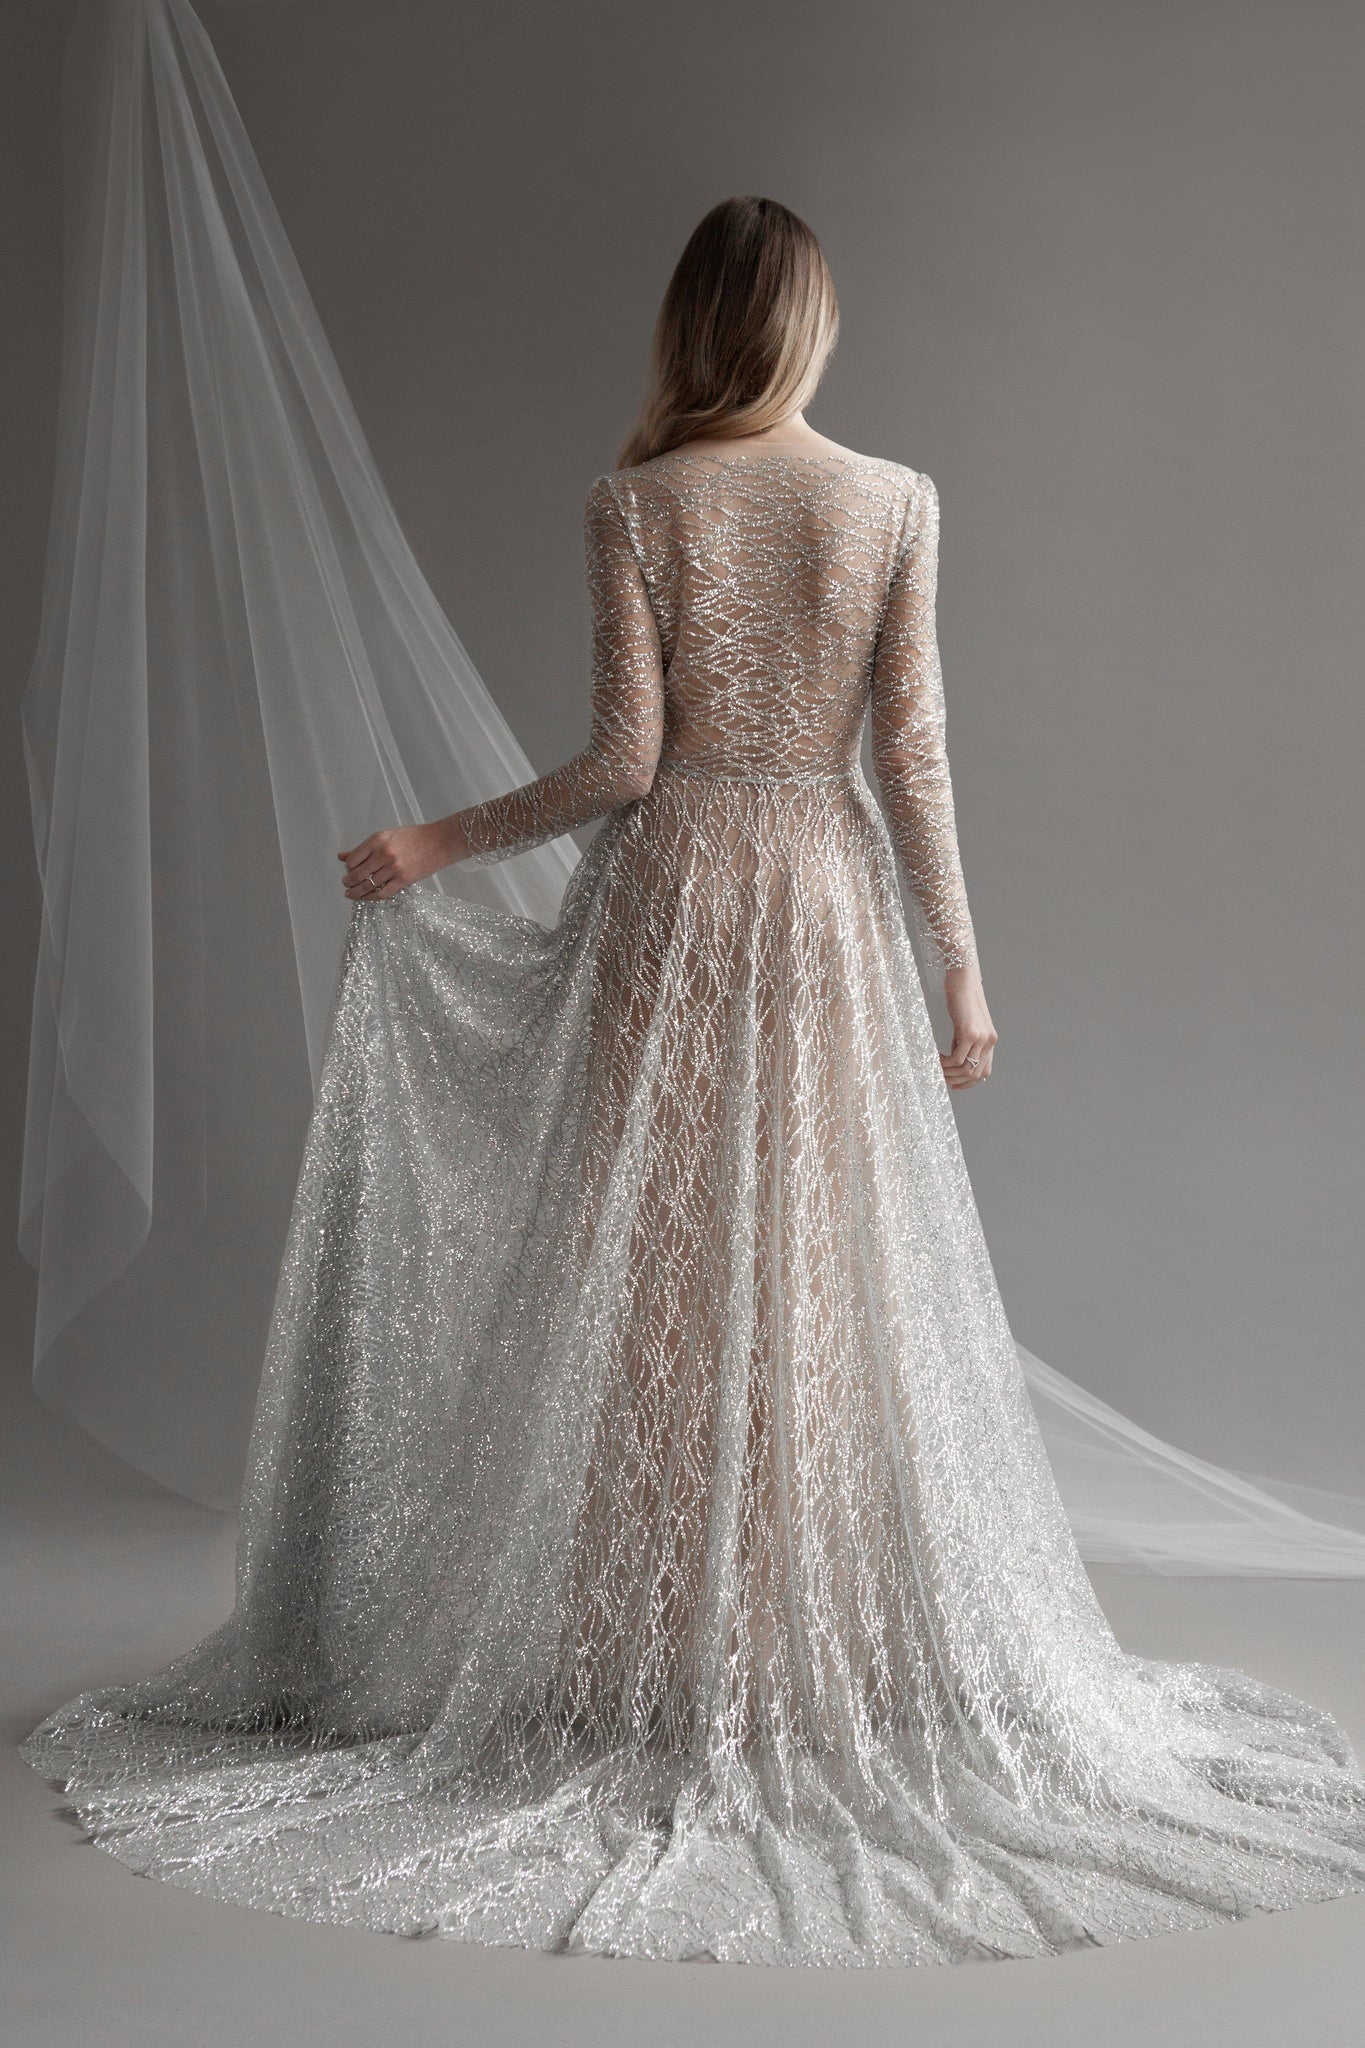 Women showing back of gray sparkle wedding dress